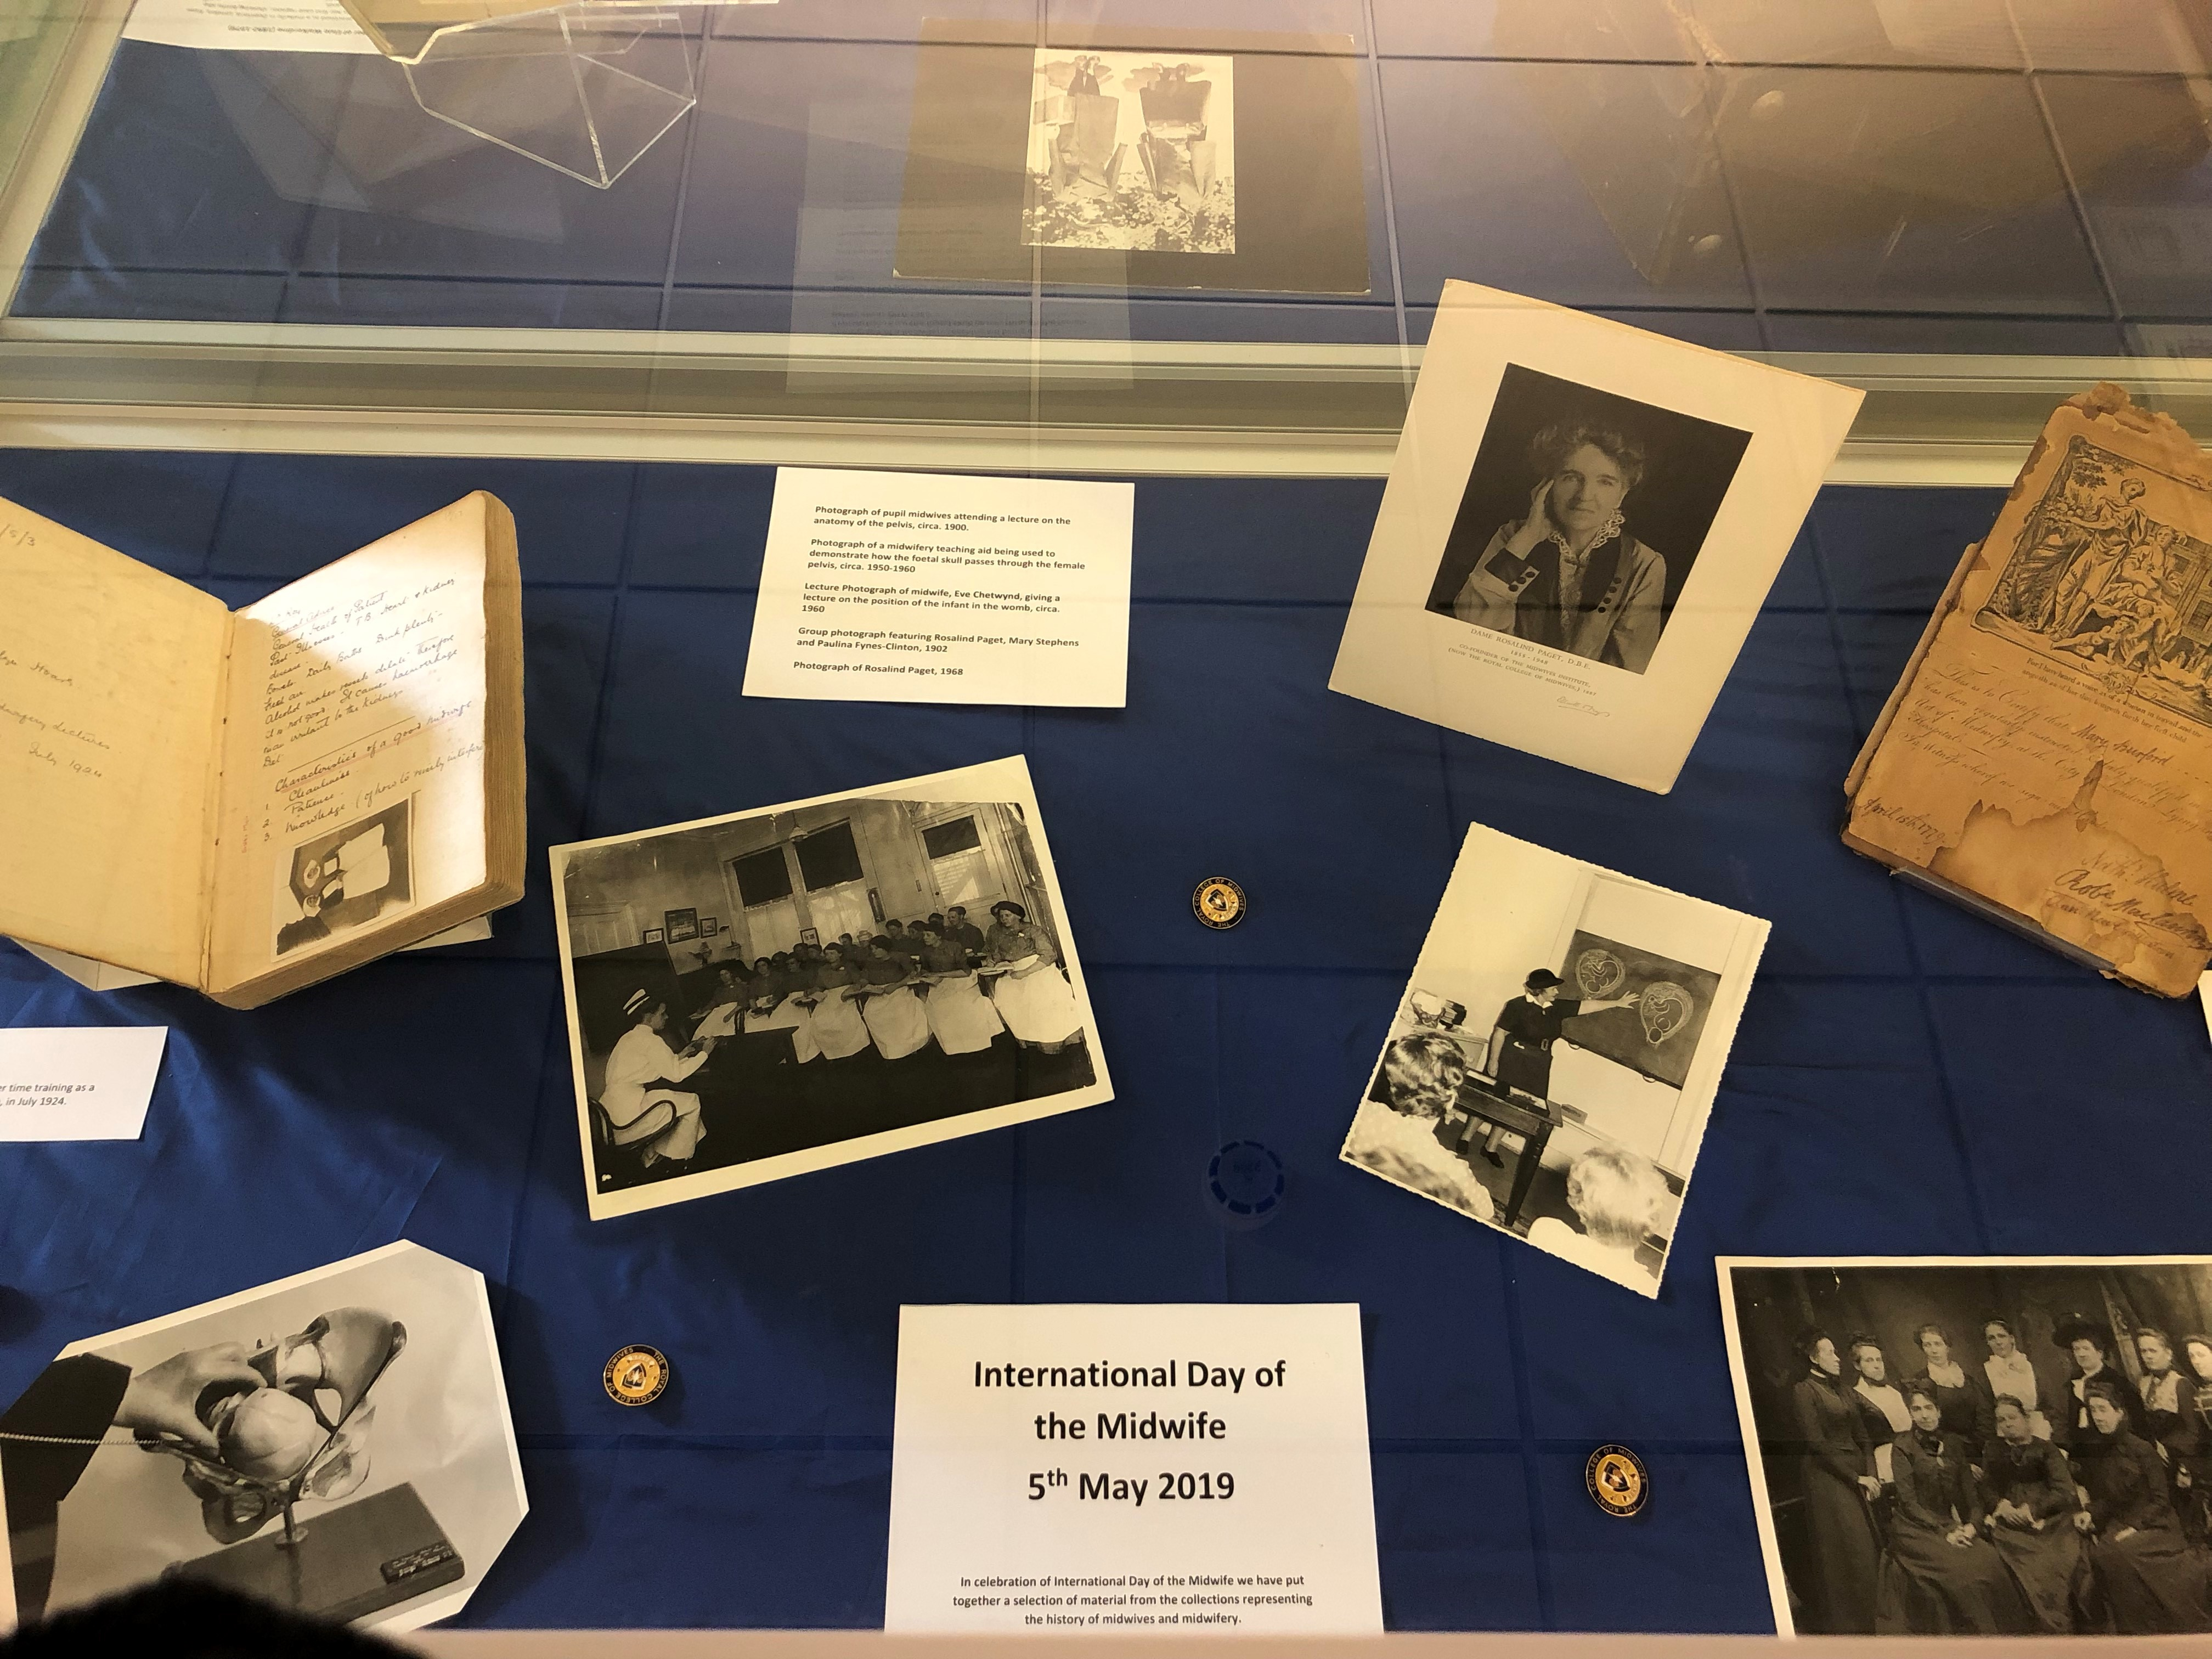 Items from the current library display: International Day of the Midwife, 5th May 2019